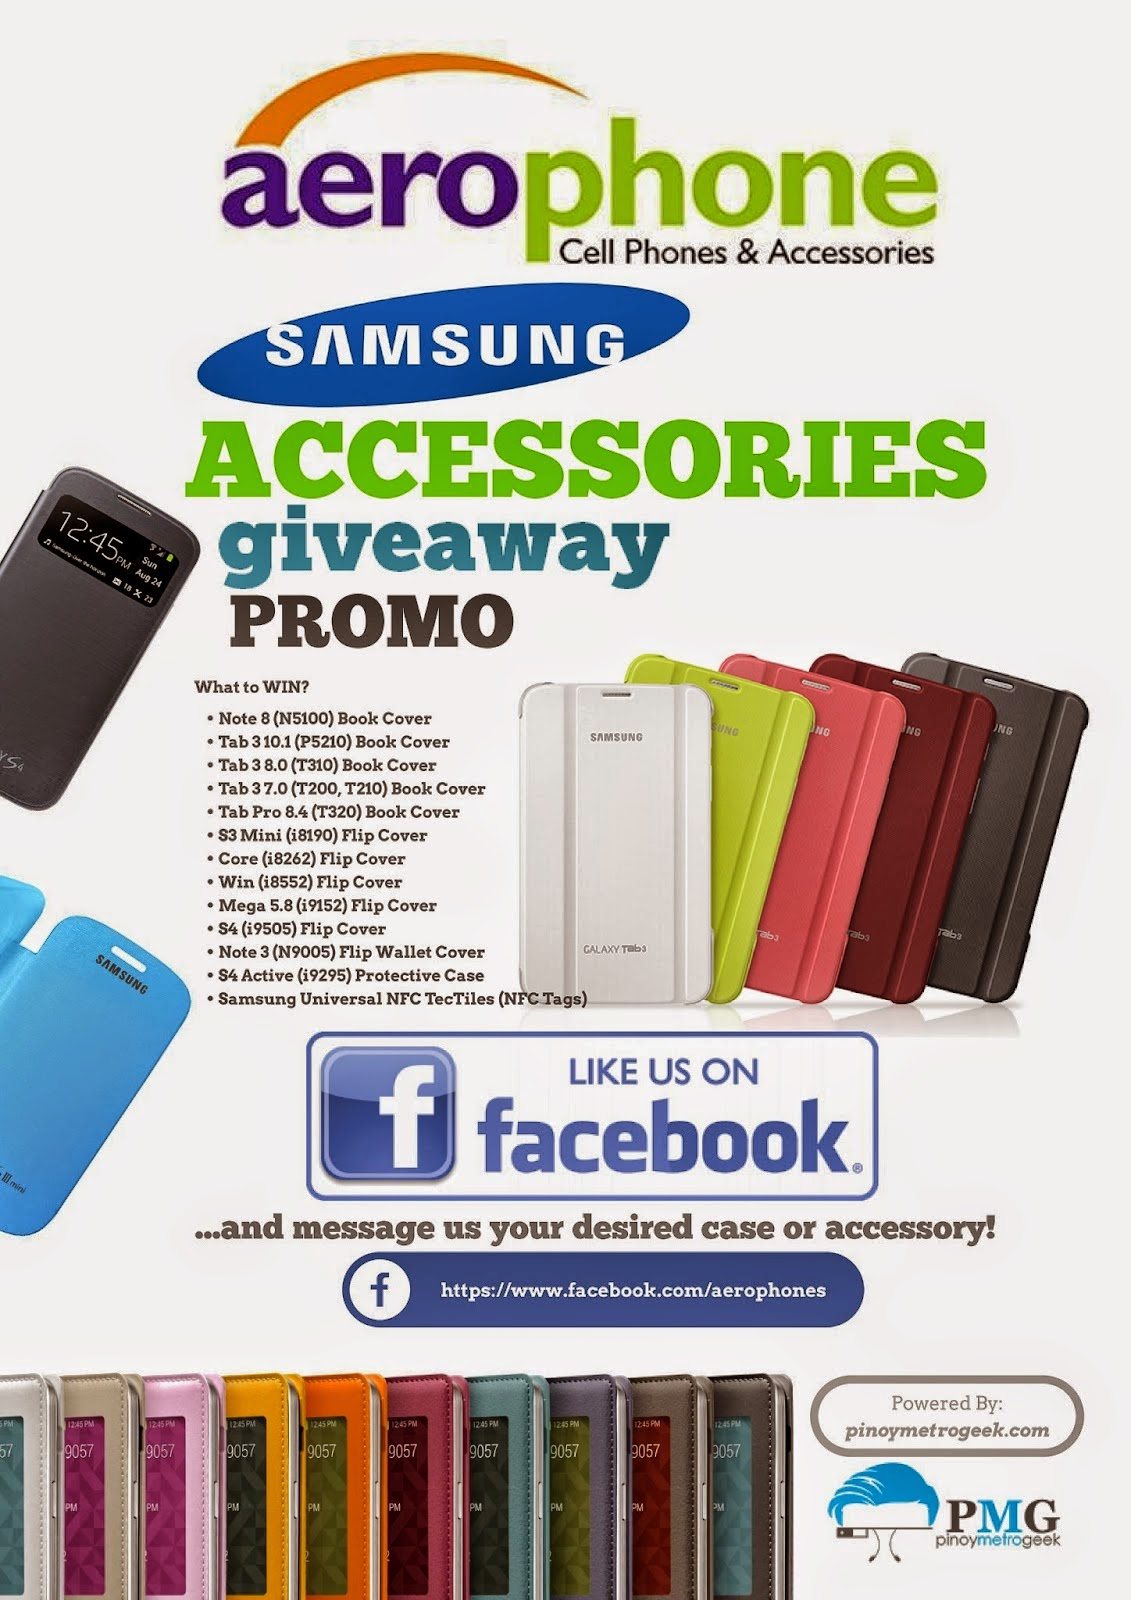 Aerophone Cebu Samsung Accessory Promo Week 4